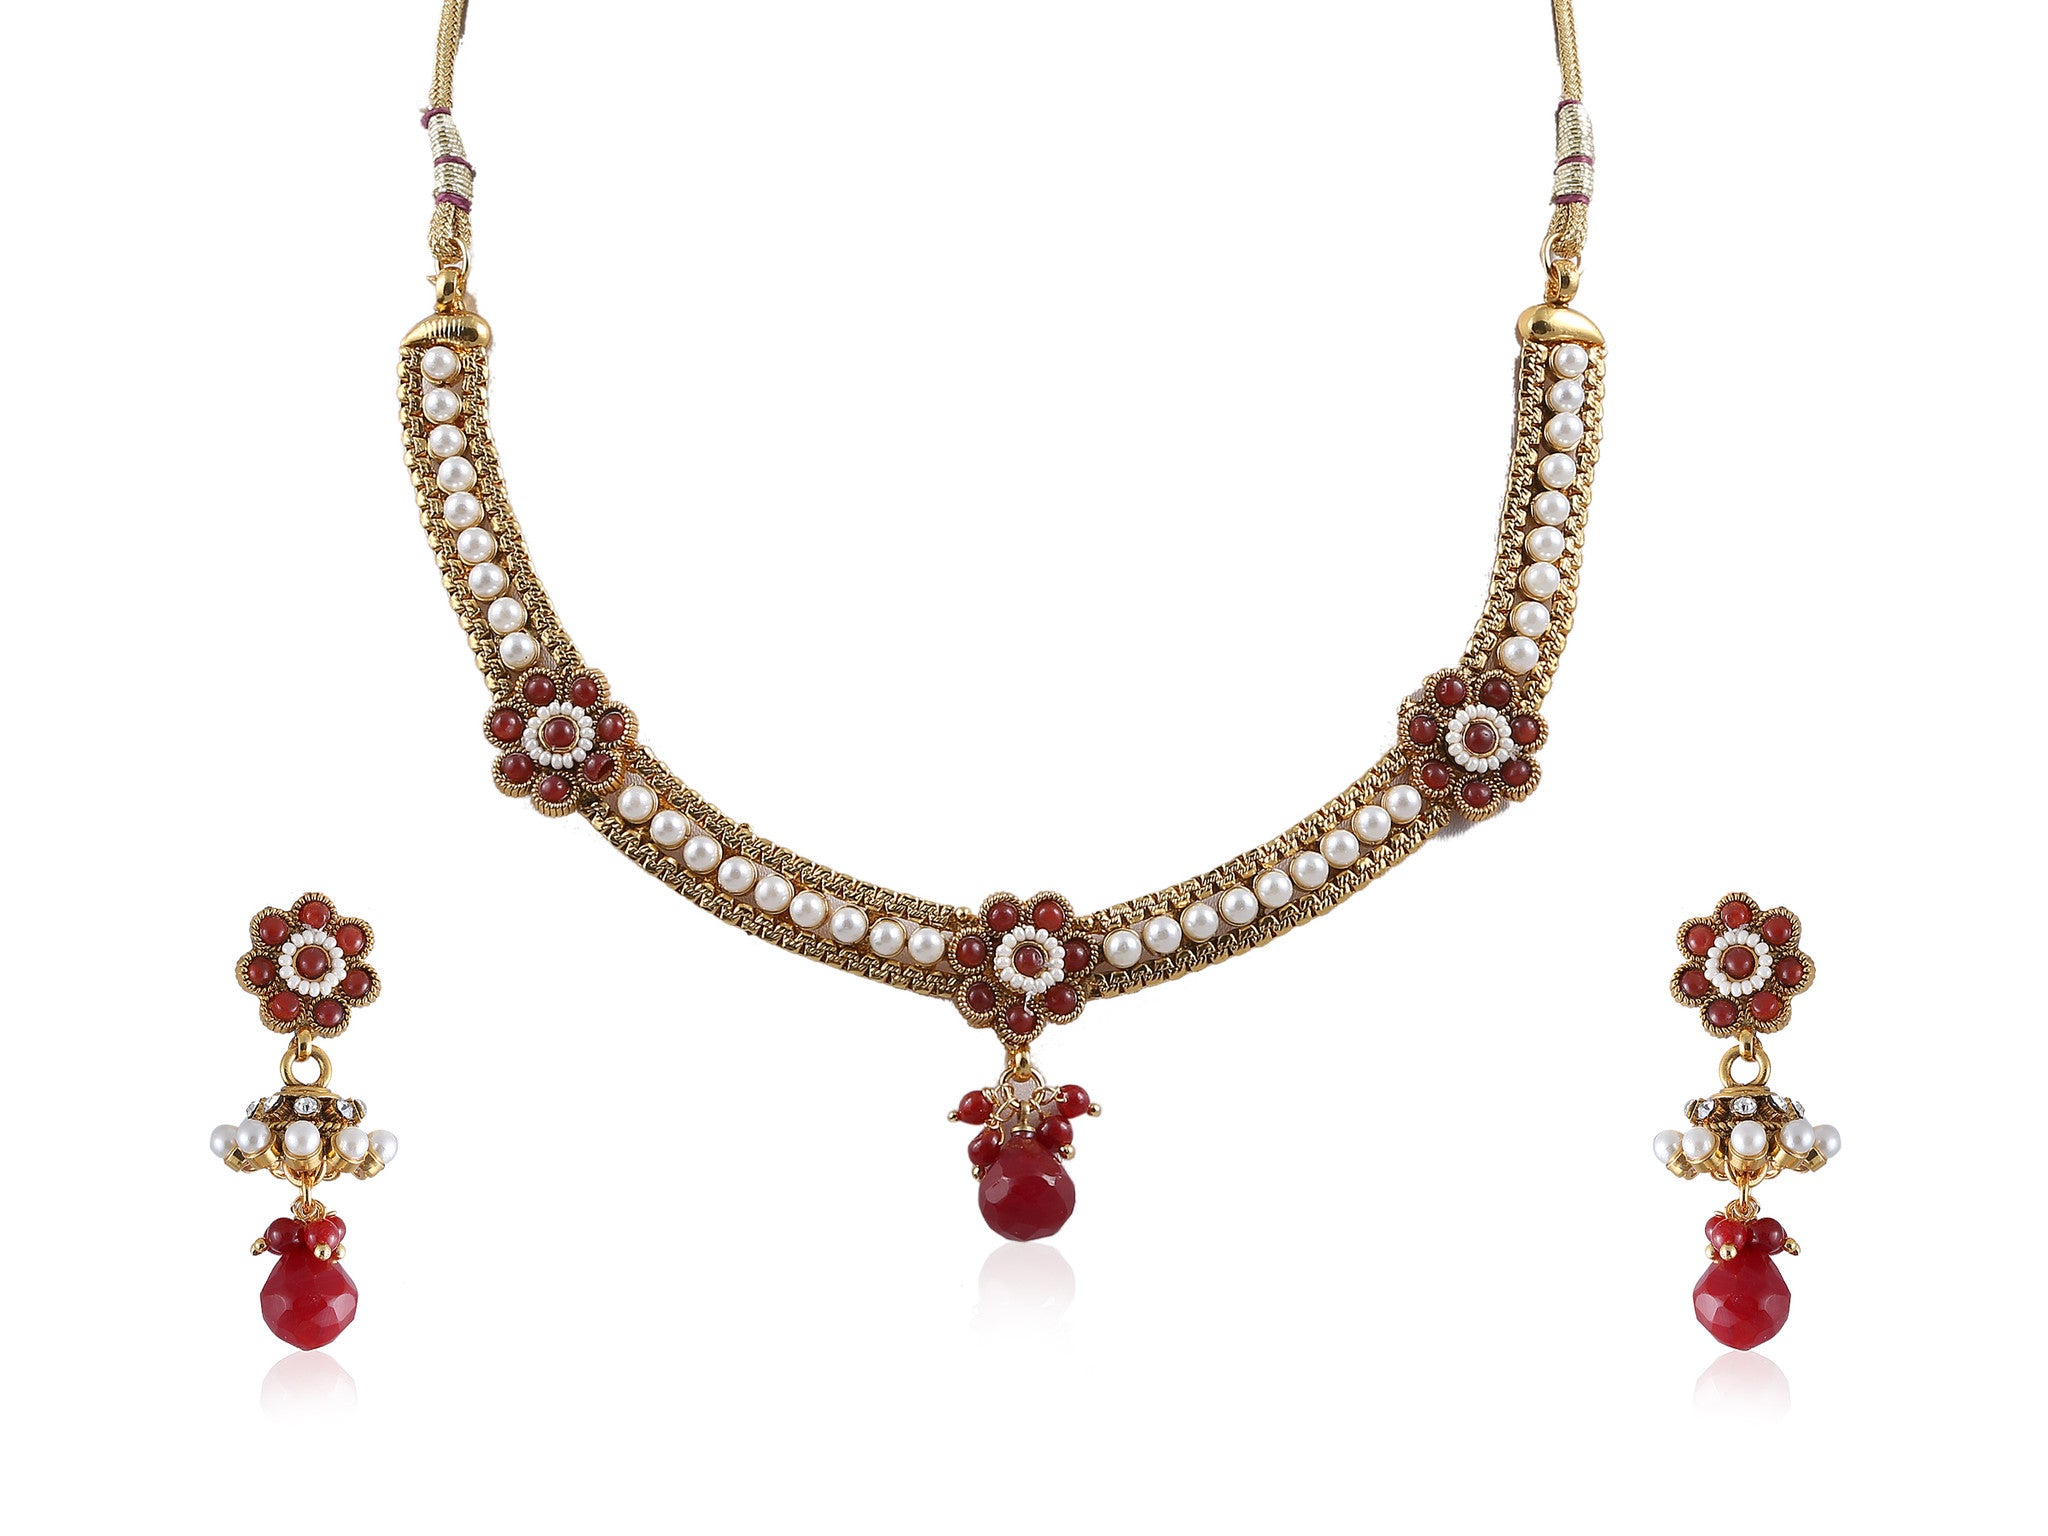 Flowery Polki Necklace Set in Red Stones and Pearls POS388